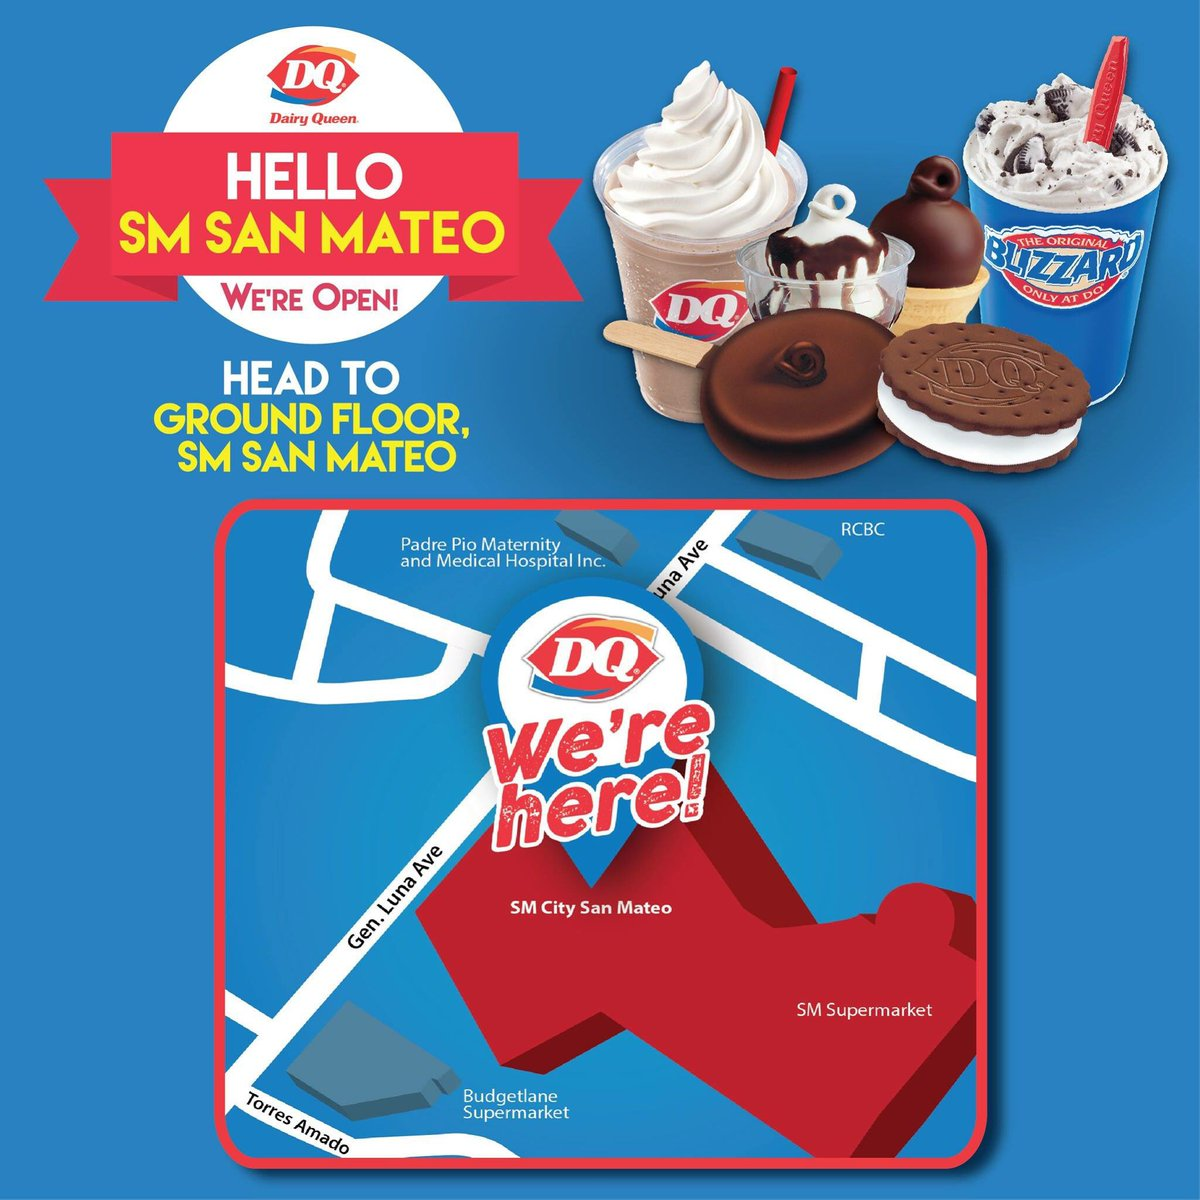 Yay! We are thrilled to have a new DQ Store! Visit us at our newly opened store in SM San Mateo. See you there! #DairyQueenPH https://t.co/67jZTARhXR